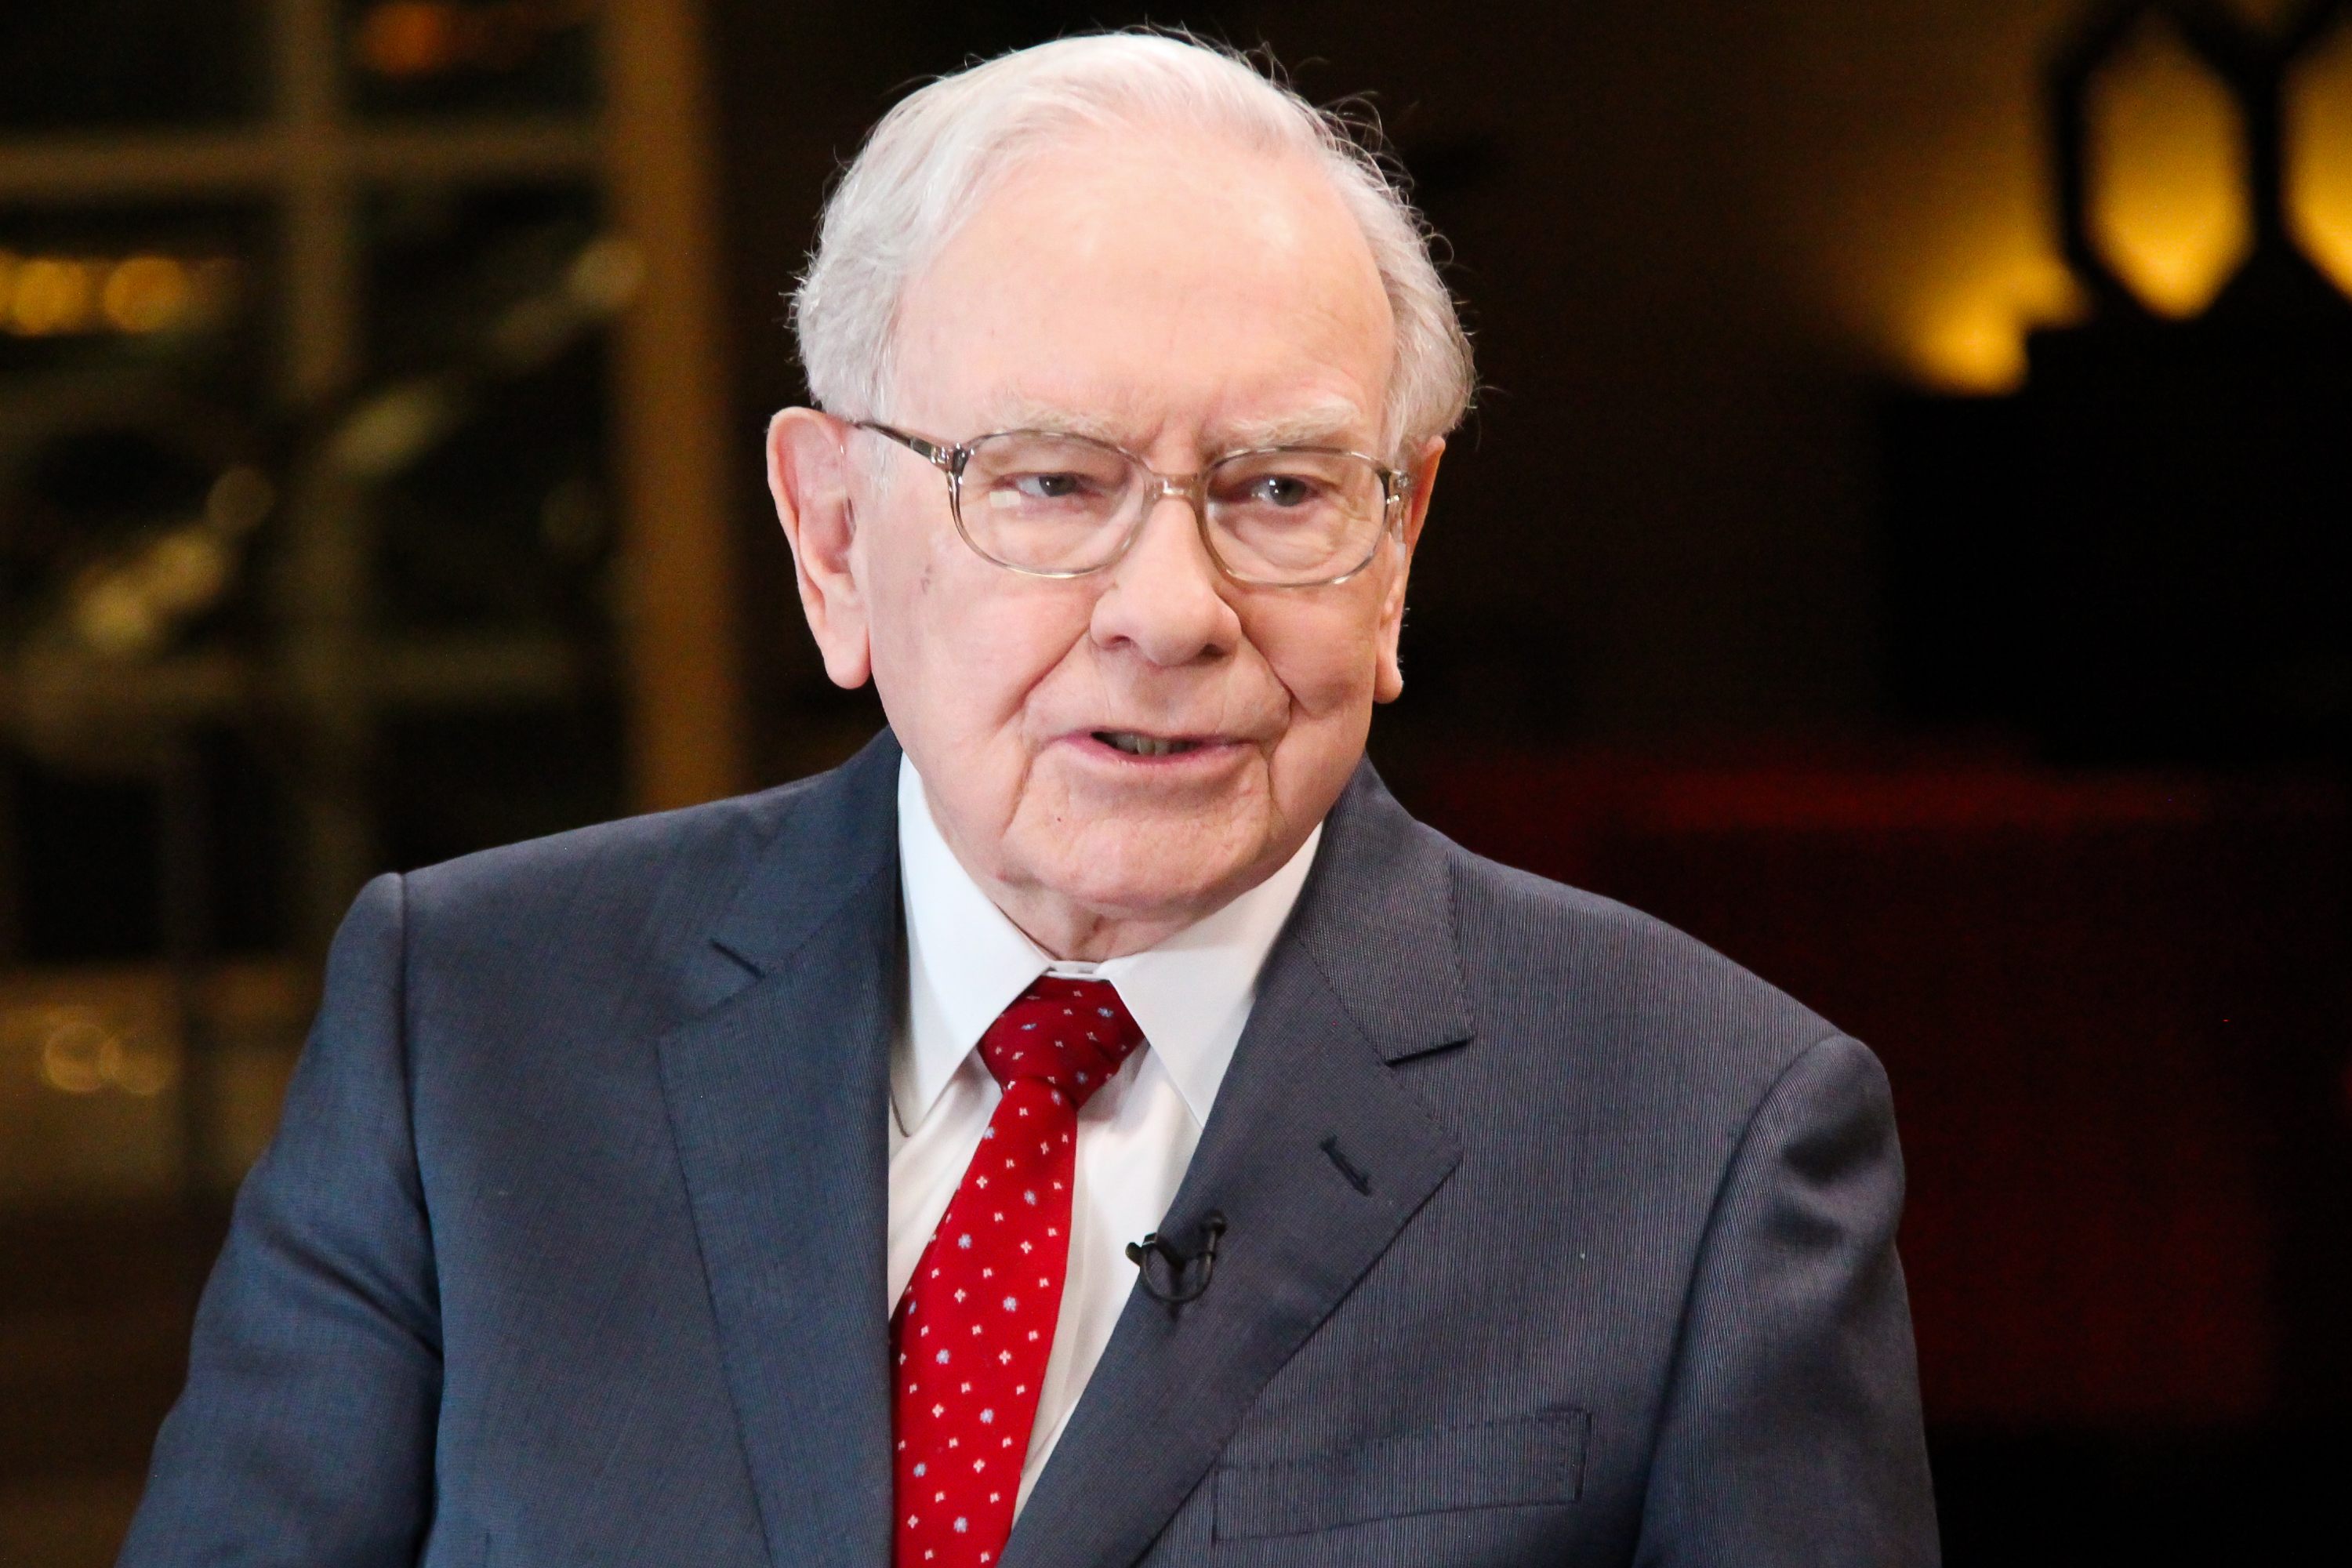 Warren Buffett, chairman and CEO of Berkshire Hathaway, will host the annual shareholders' meeting this weekend.